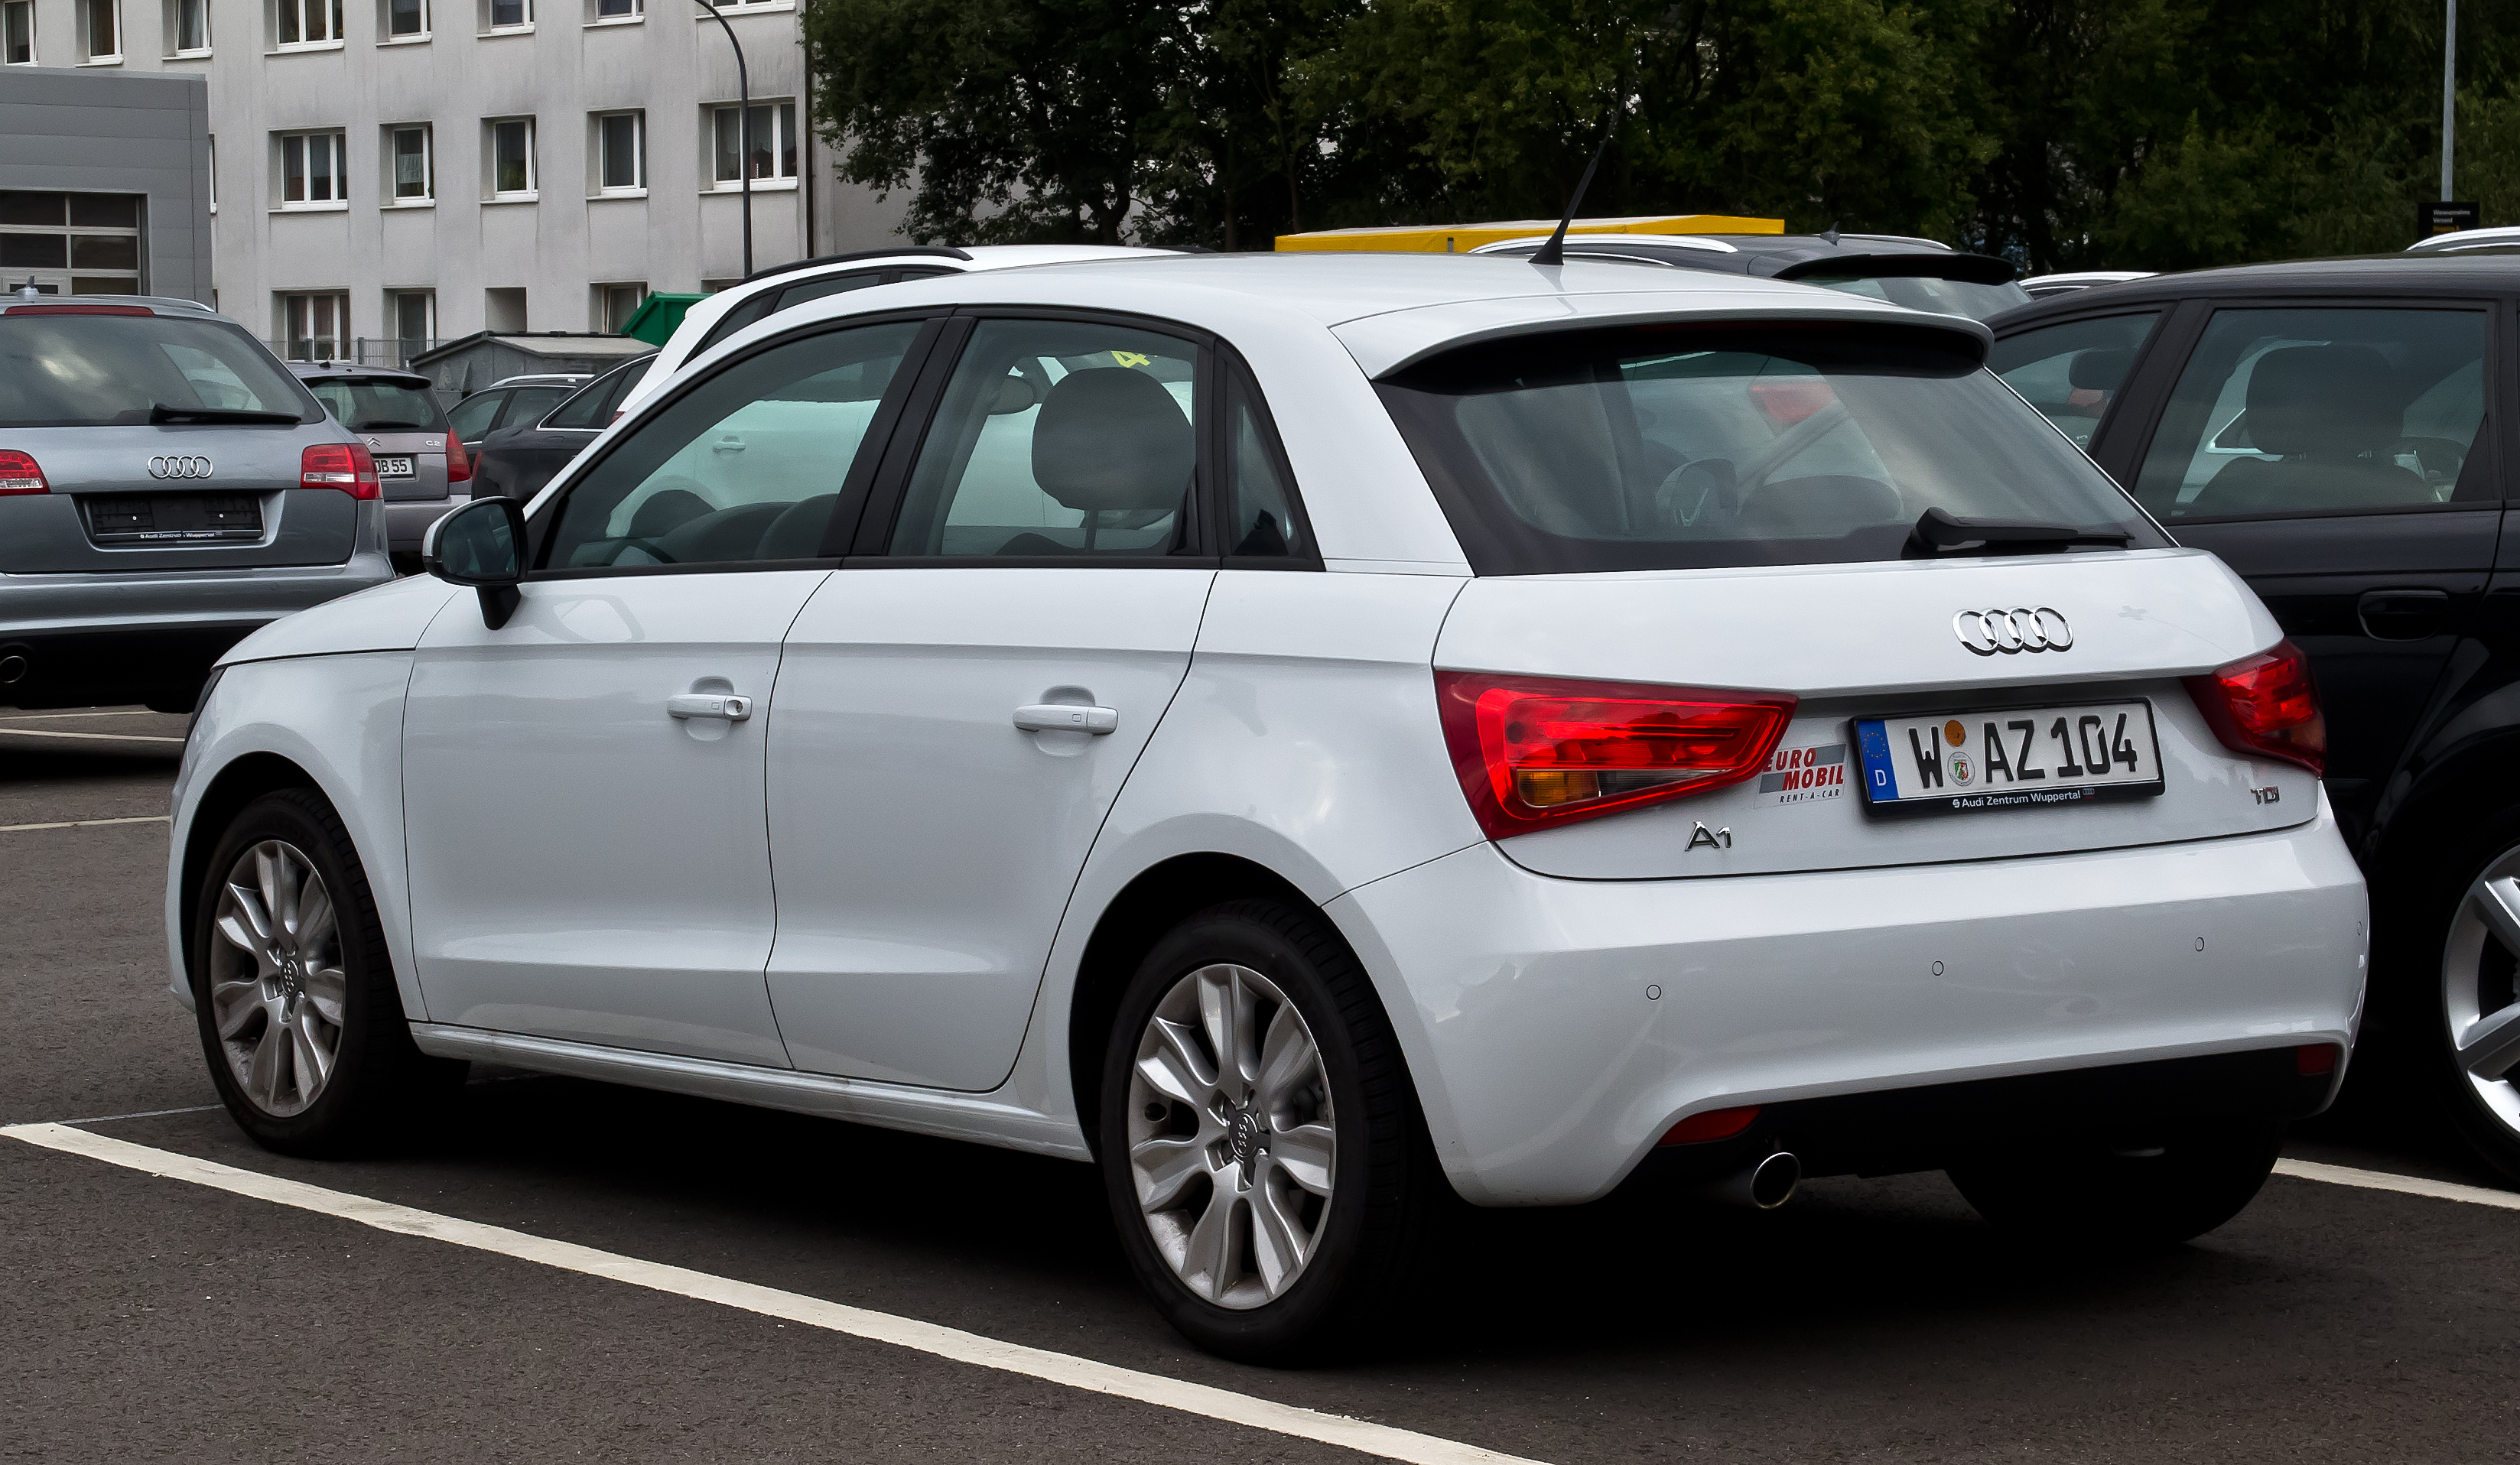 plik audi a1 sportback 1 6 tdi ambition heckansicht 5 september 2012. Black Bedroom Furniture Sets. Home Design Ideas